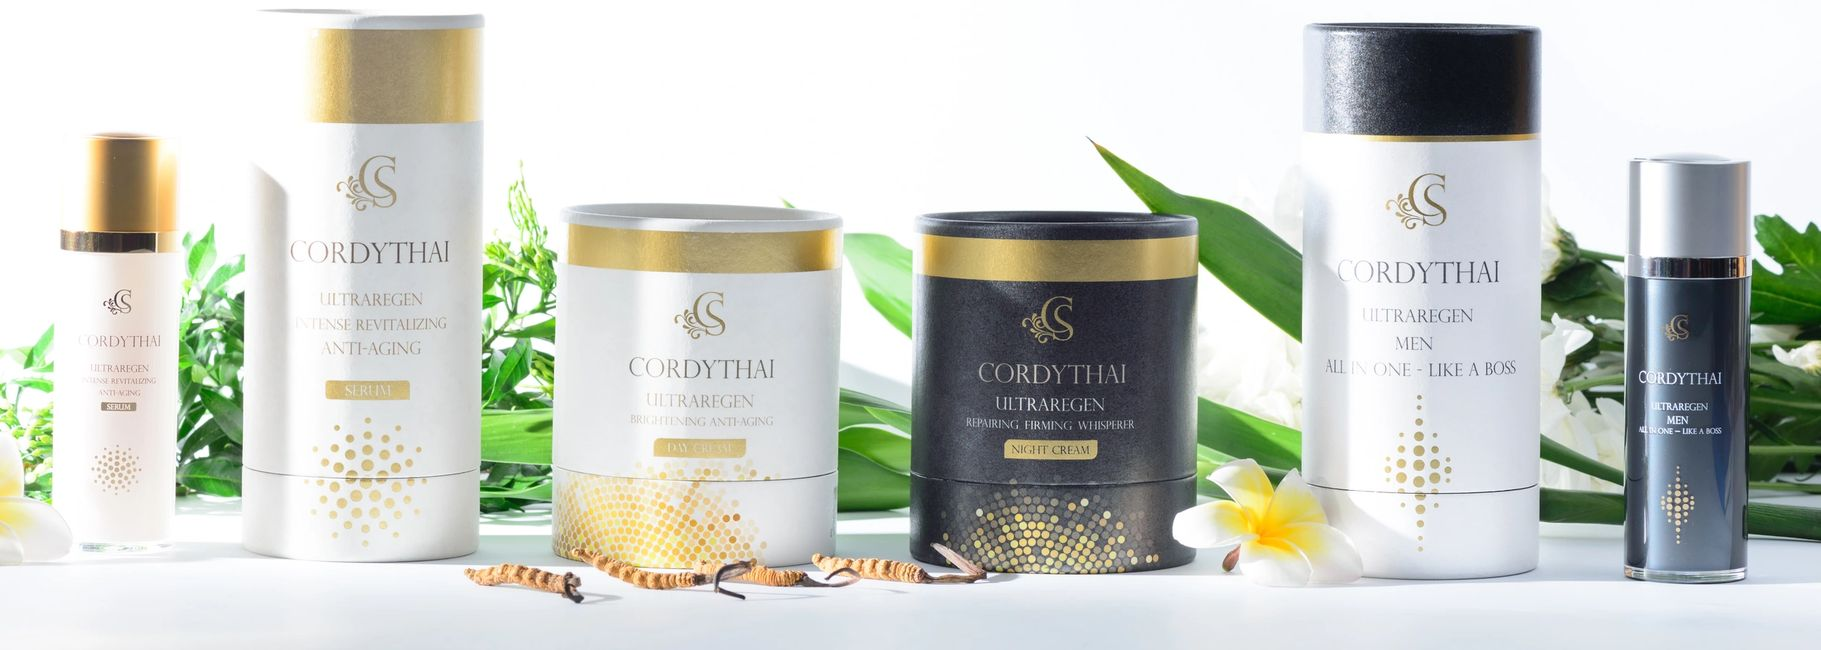 CORDYTHAI BEST ANTI AGING SKINCARE PRODUCTS